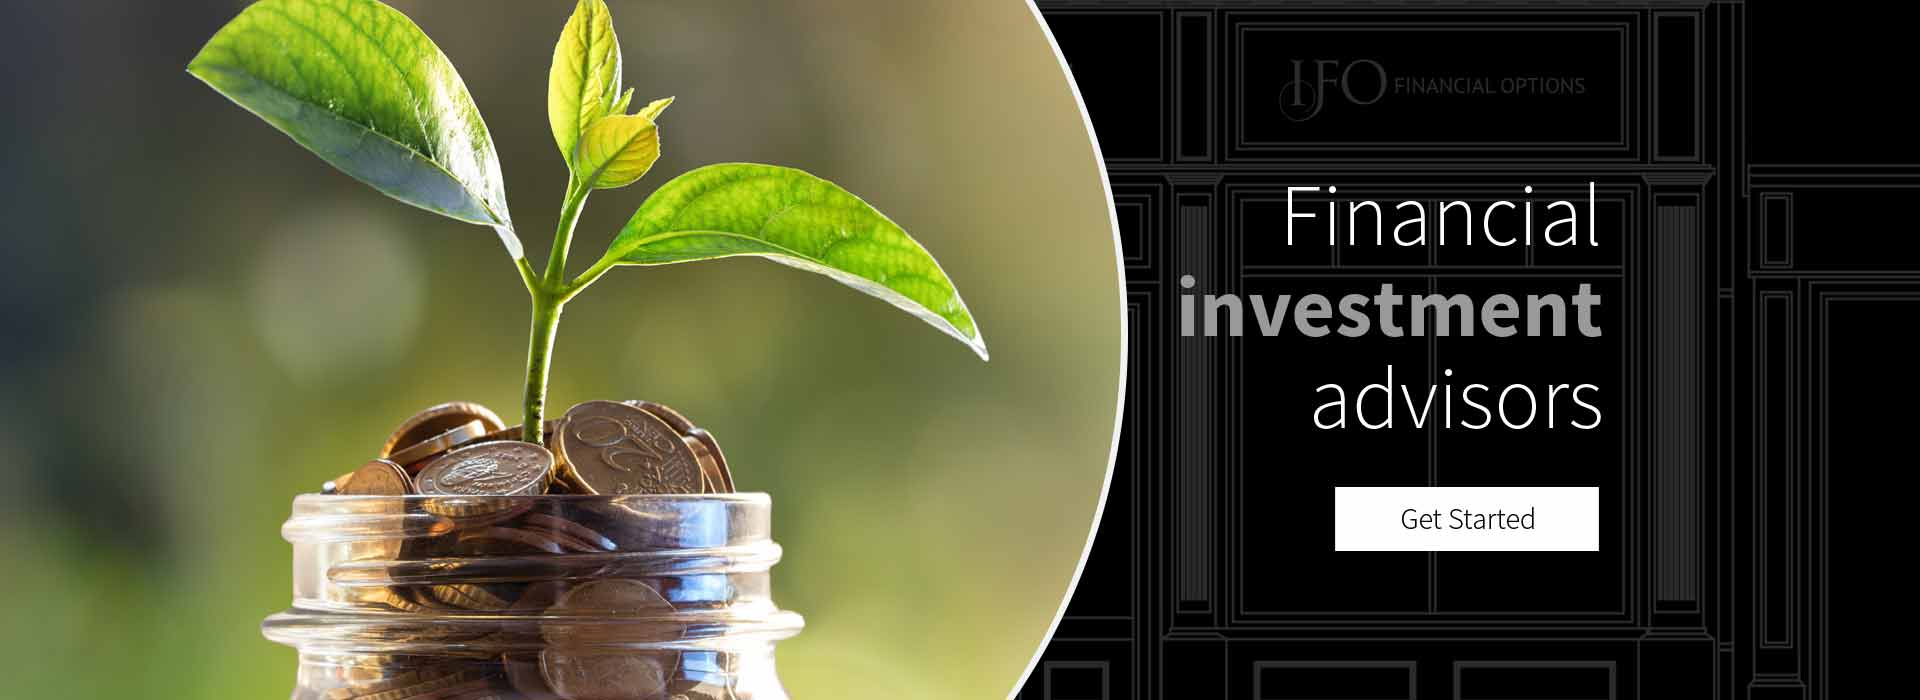 independent financial advice for investments selby